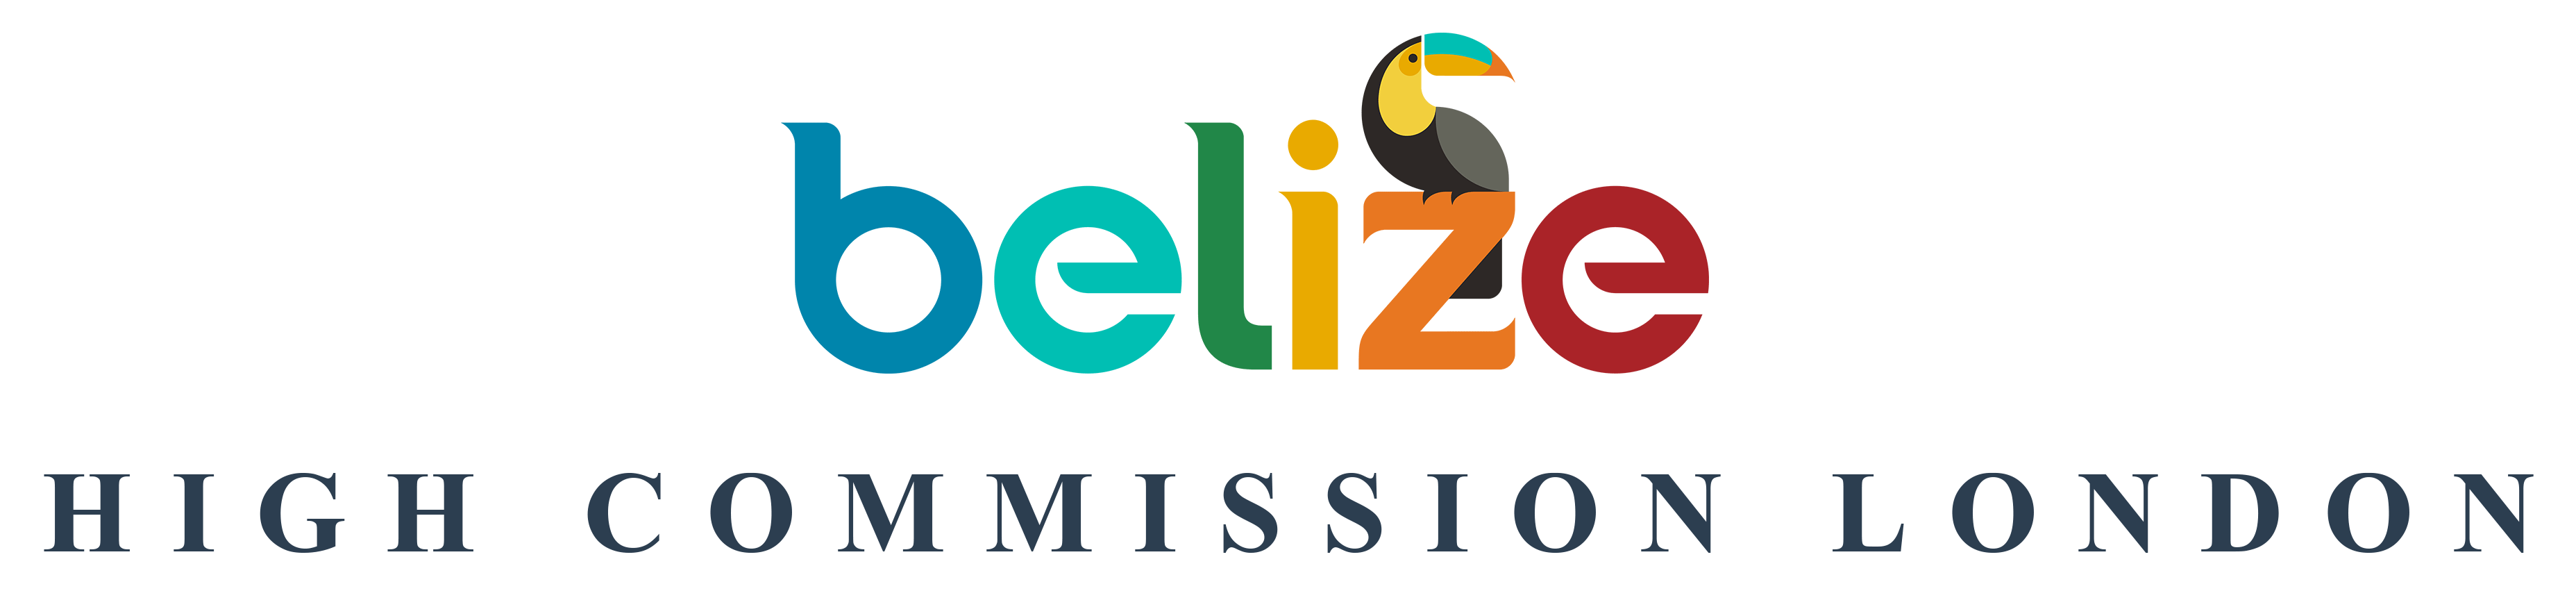 Visa Application and Instructions – The Belize High